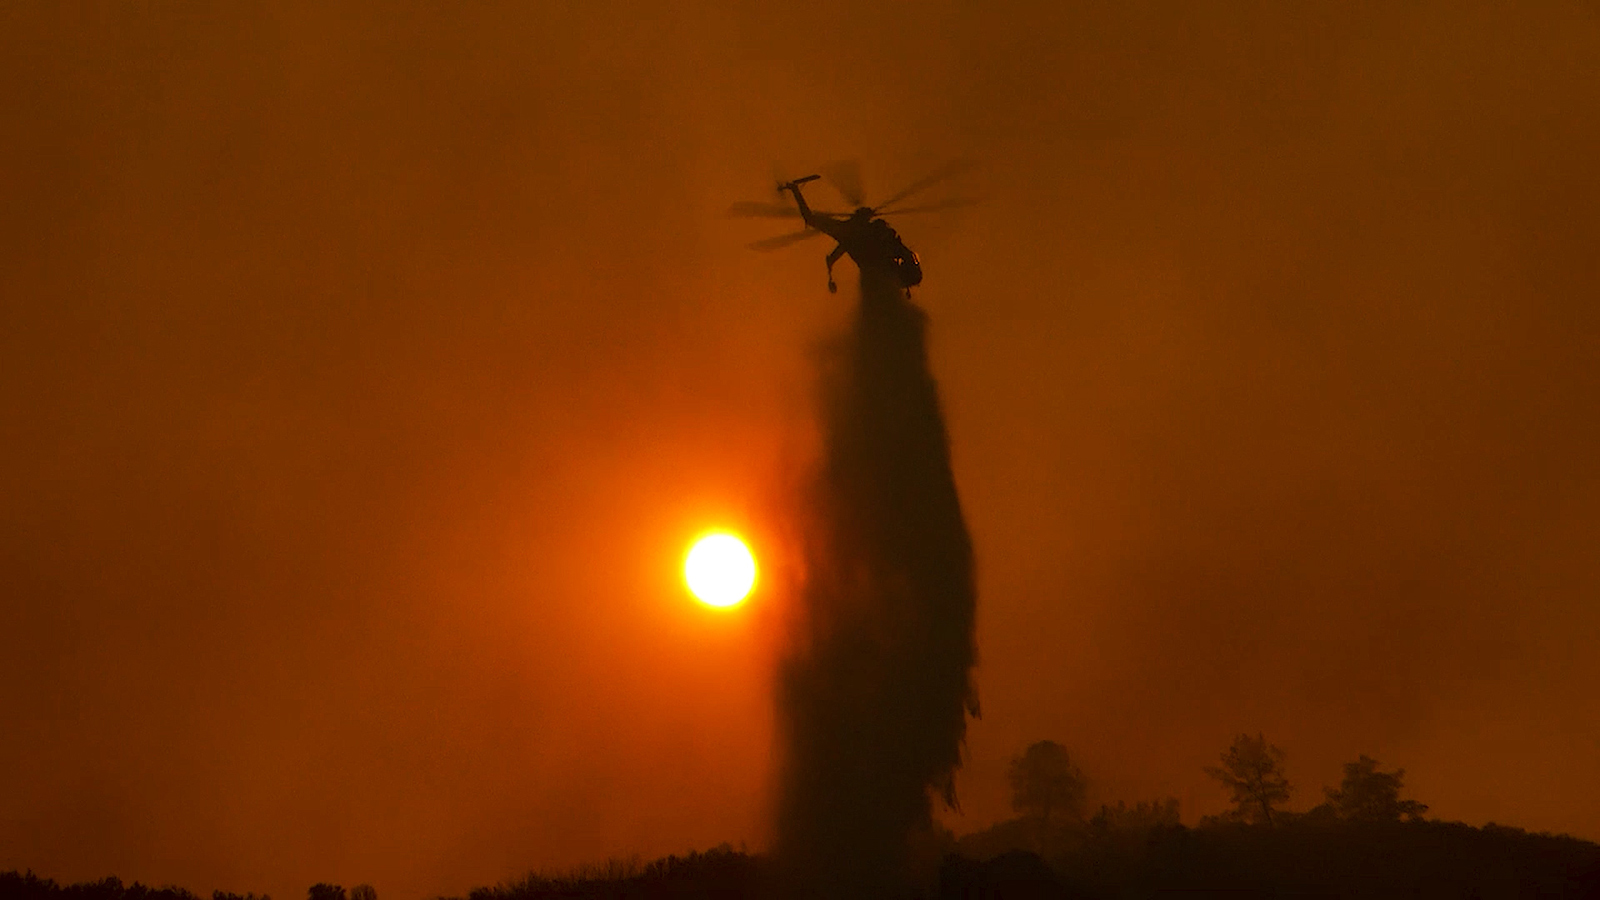 Helicopter dumping water on wildfire in sunset